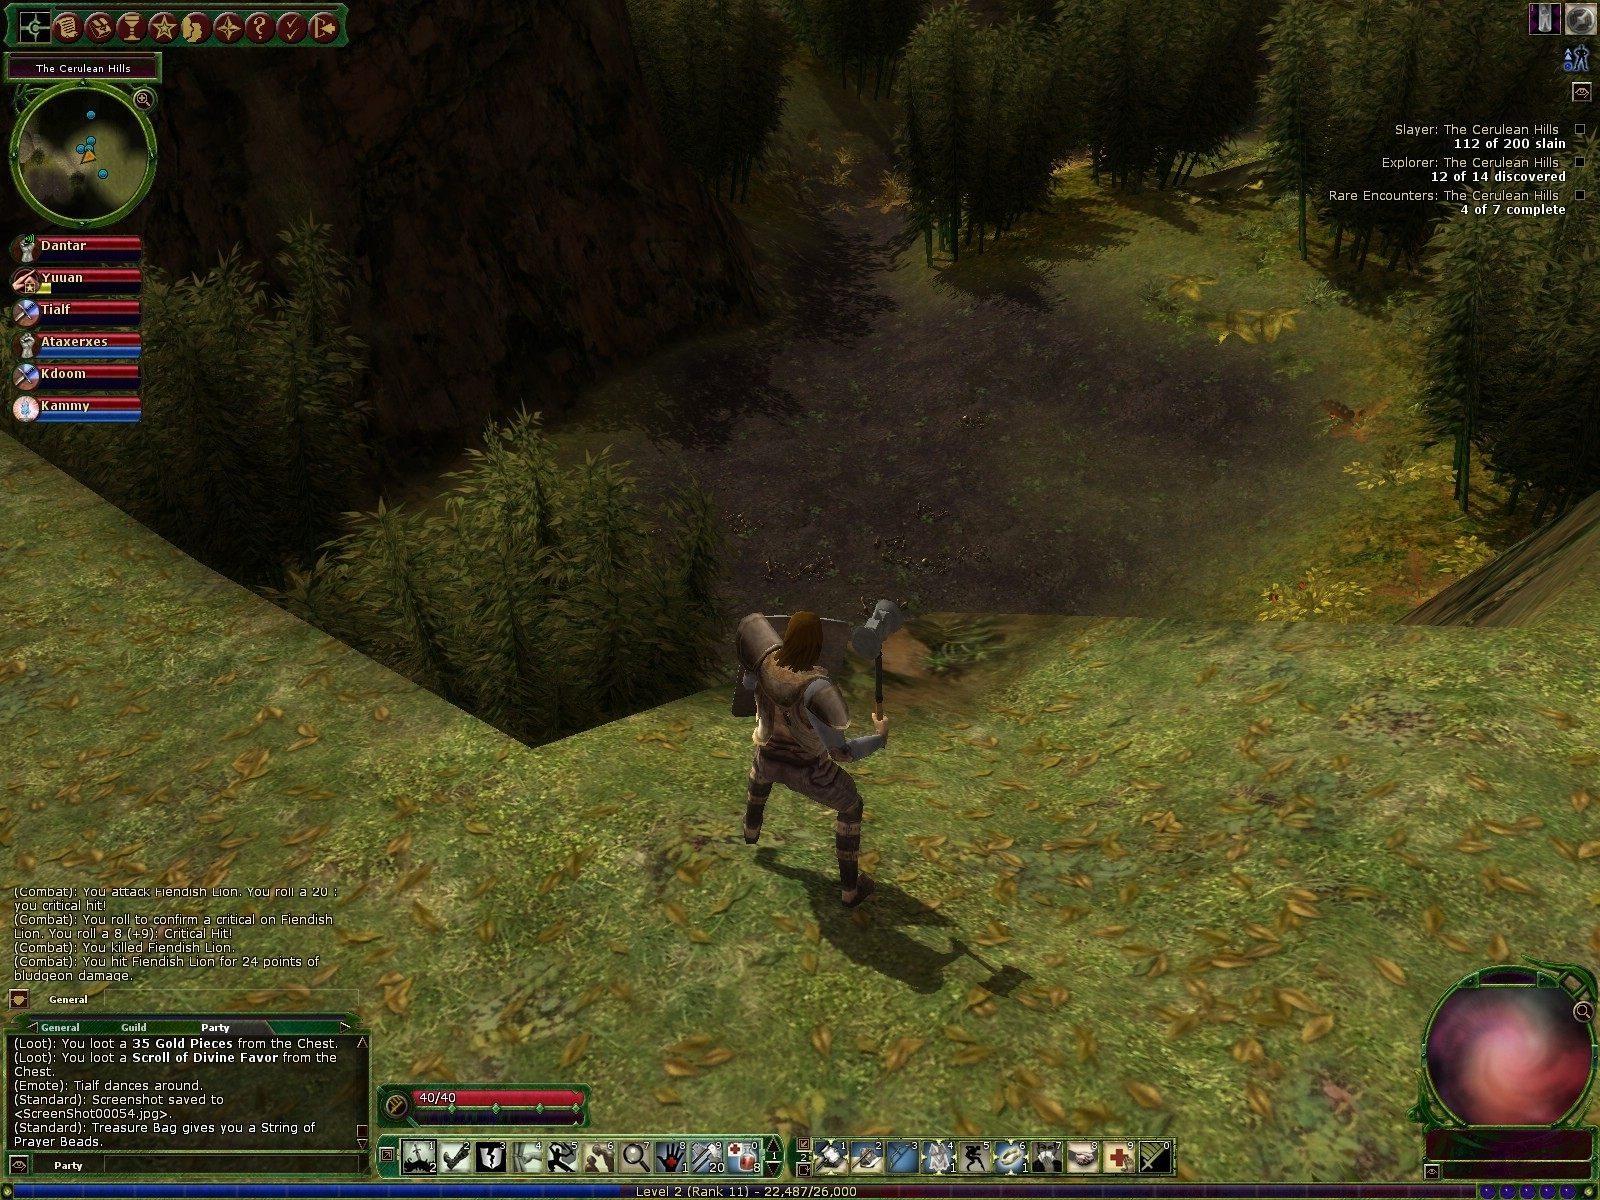 Dungeons & Dragons Online - DDO: Explorable area out of harbor. Budget hammer of justice in hand, hehe.